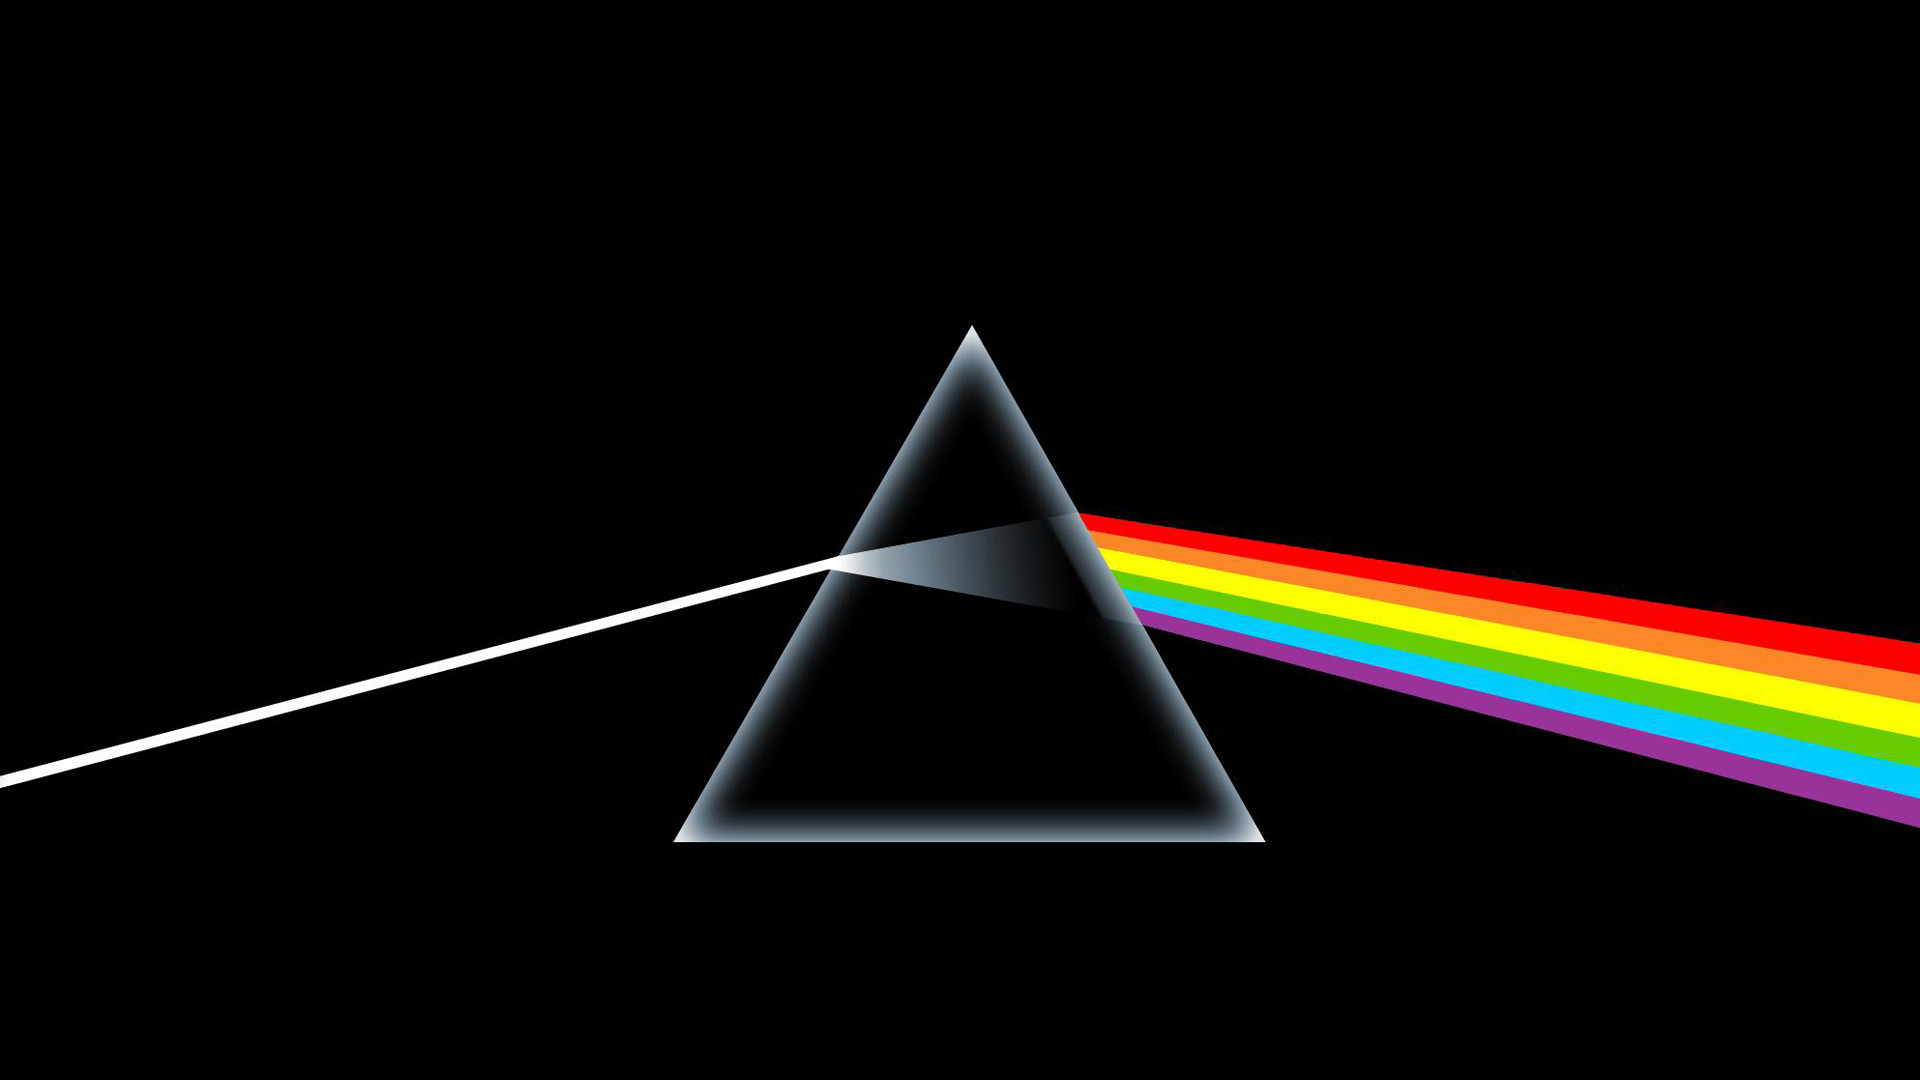 1920x1080 Pink Floyd Meddle Cover Art Wallpaper Original Pink Floyd Dark Side Of The  Moon Full HD Wallpaper ...